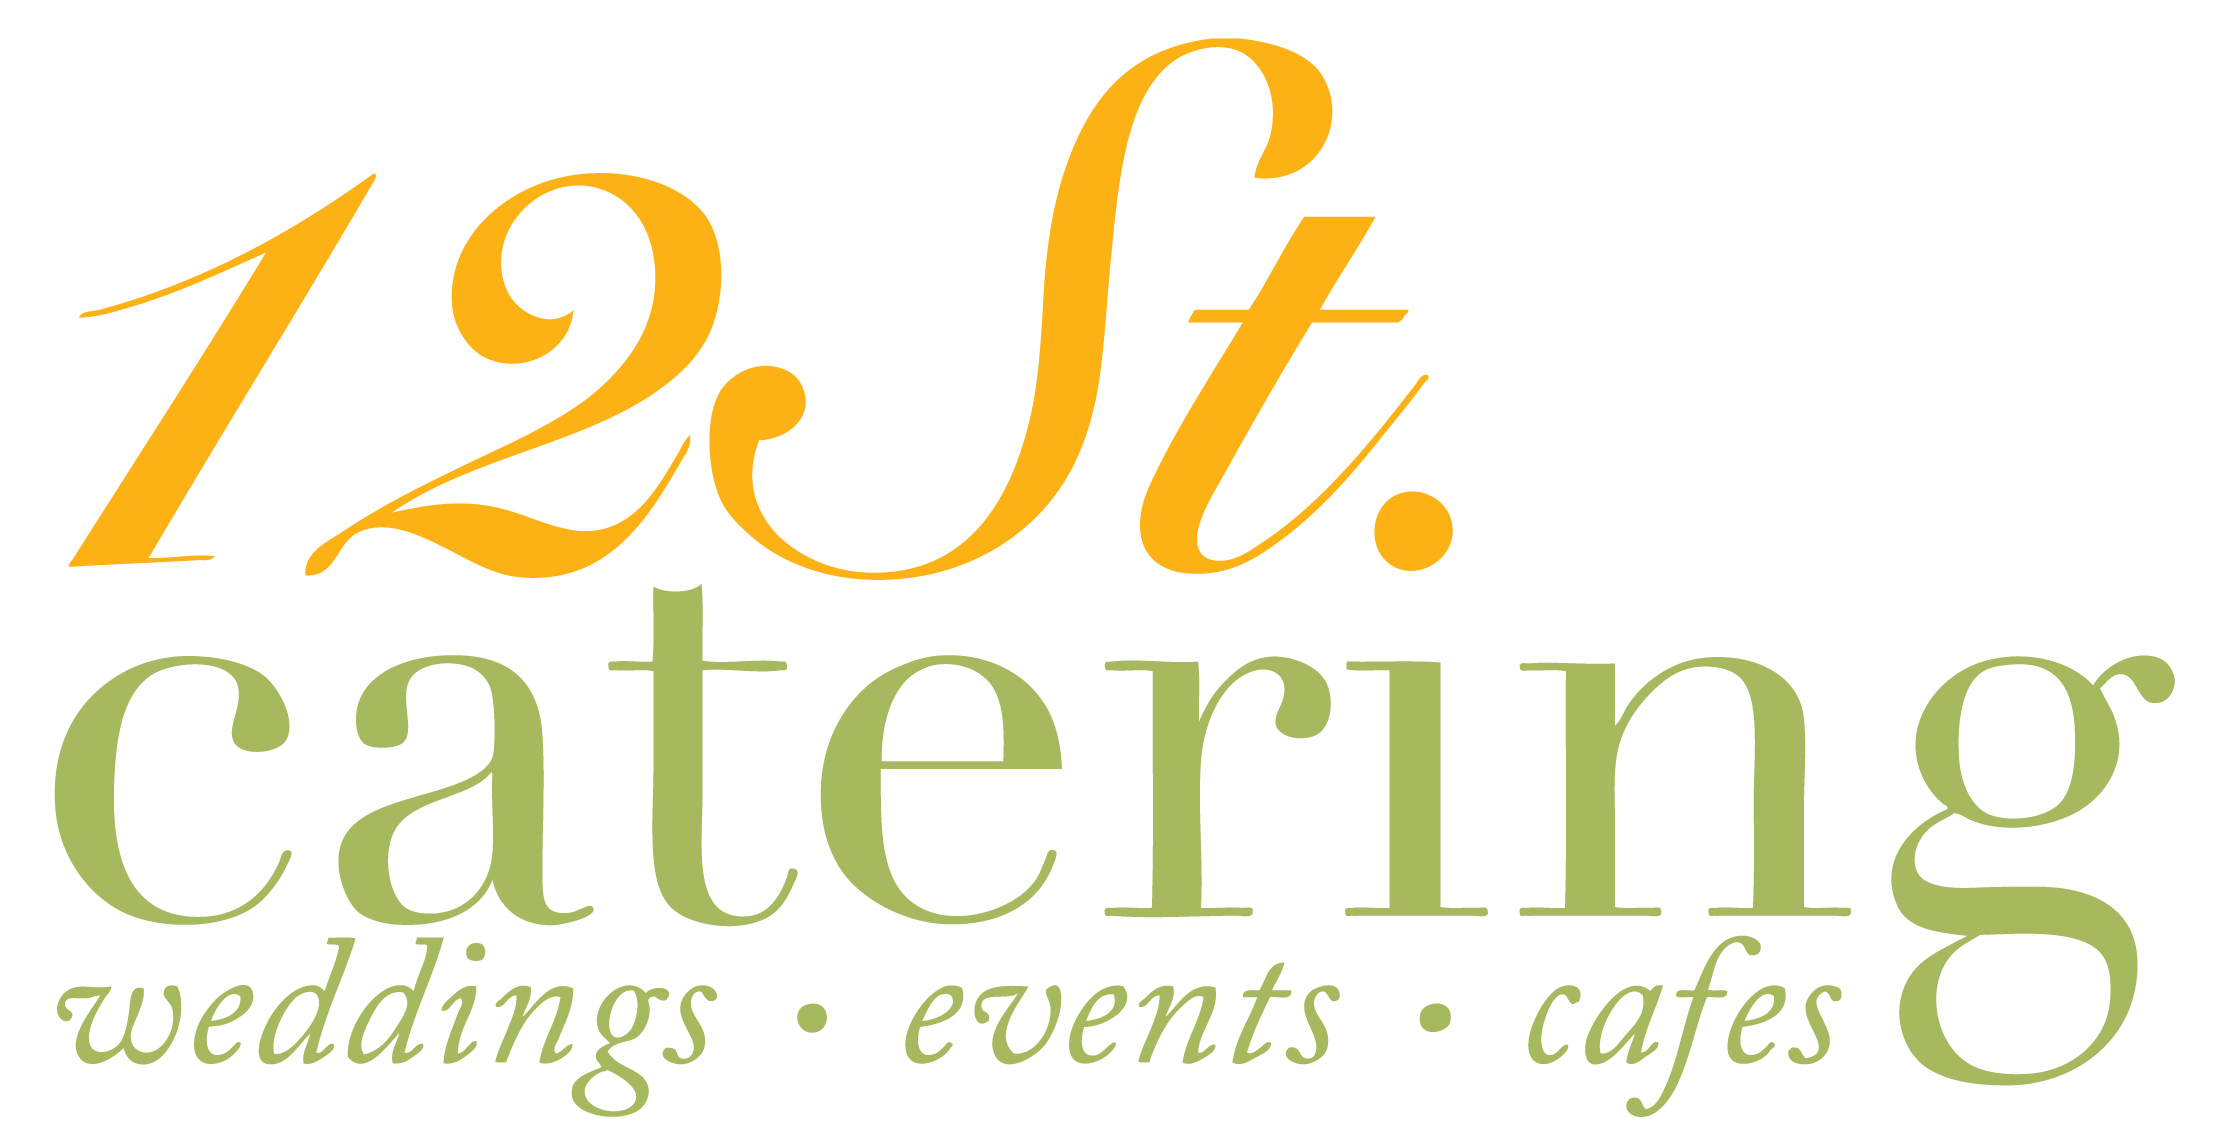 12th Street Catering Logo